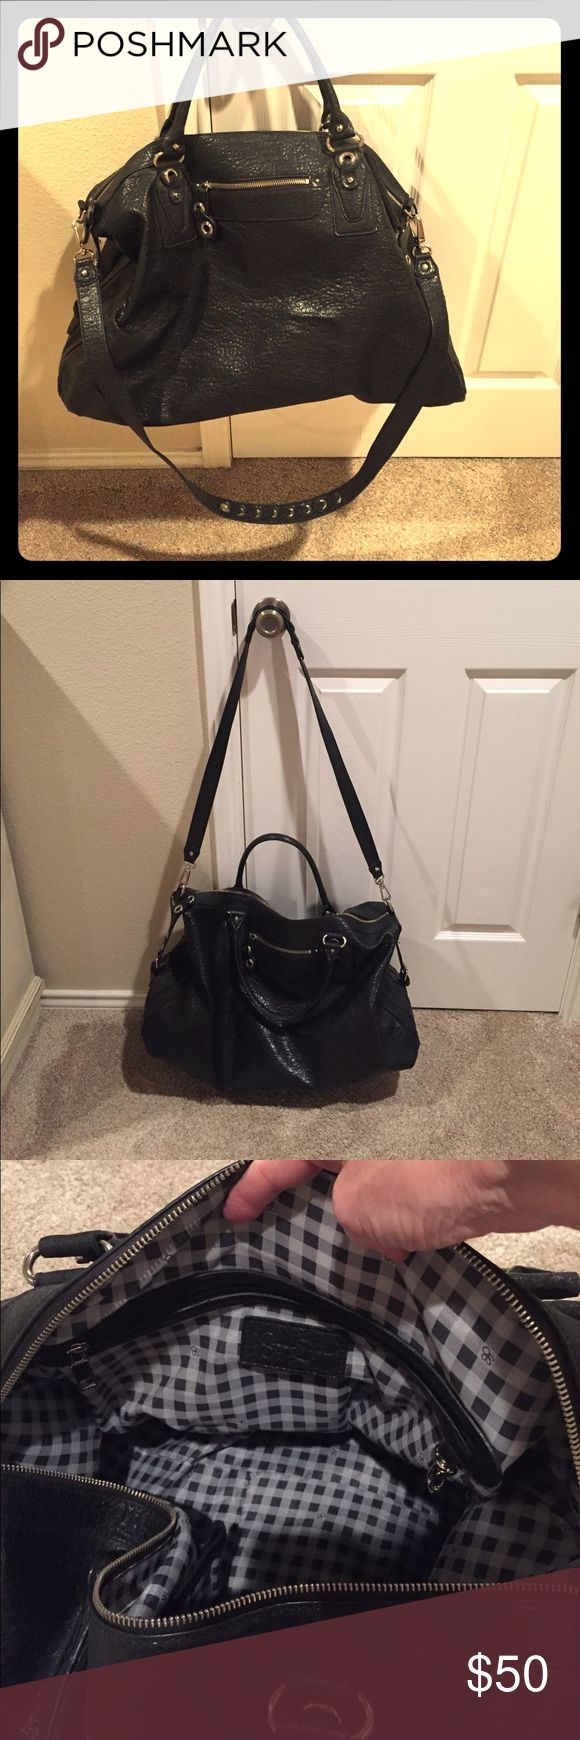 Leather Travel Bag Travel in style with this lovely Jessica Simpson black leather weekender! Outside zippered pocket on each side. Zippered inside pocket plus two additional small pockets. Cute checked lining. Detachable shoulder strap.  This classic will get better with age! Jessica Simpson Bags Travel Bags